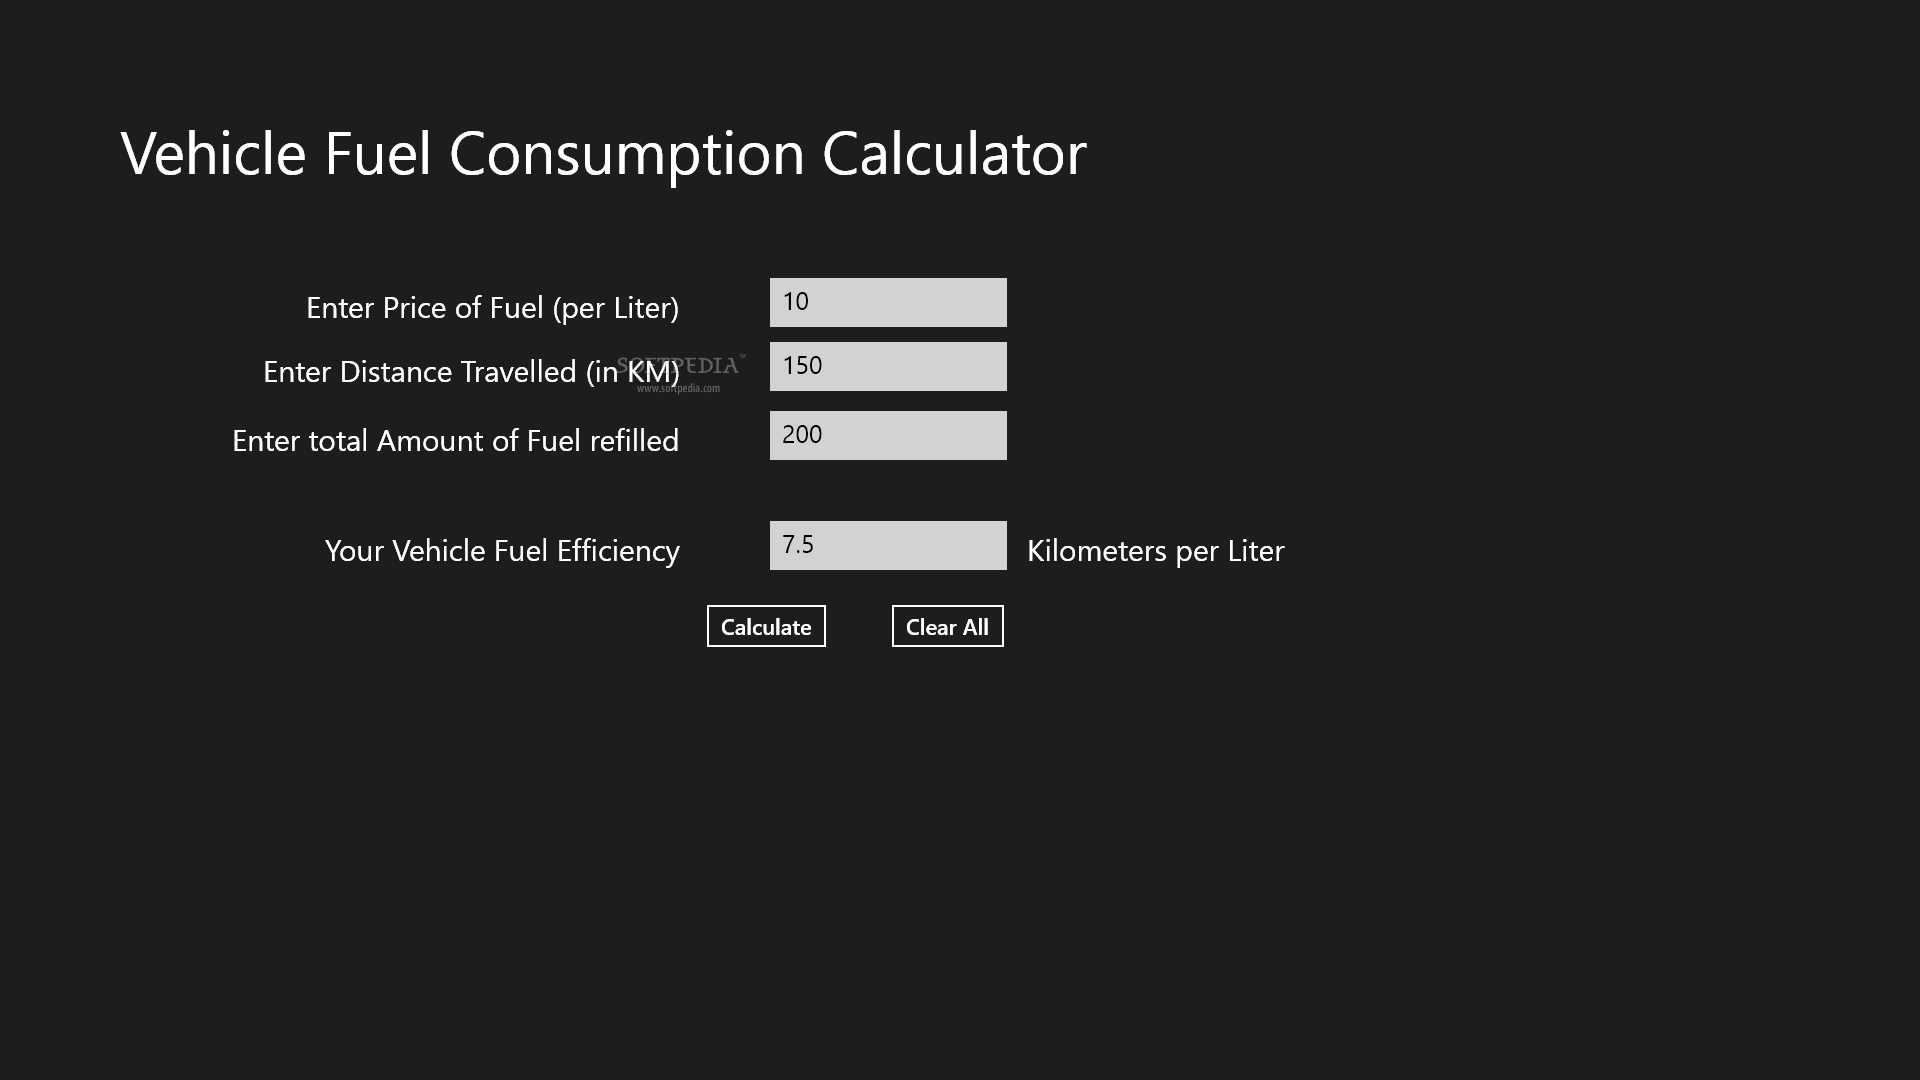 Vehicle Fuel Consumption Calculator Allows You To Calculate The Efficiency